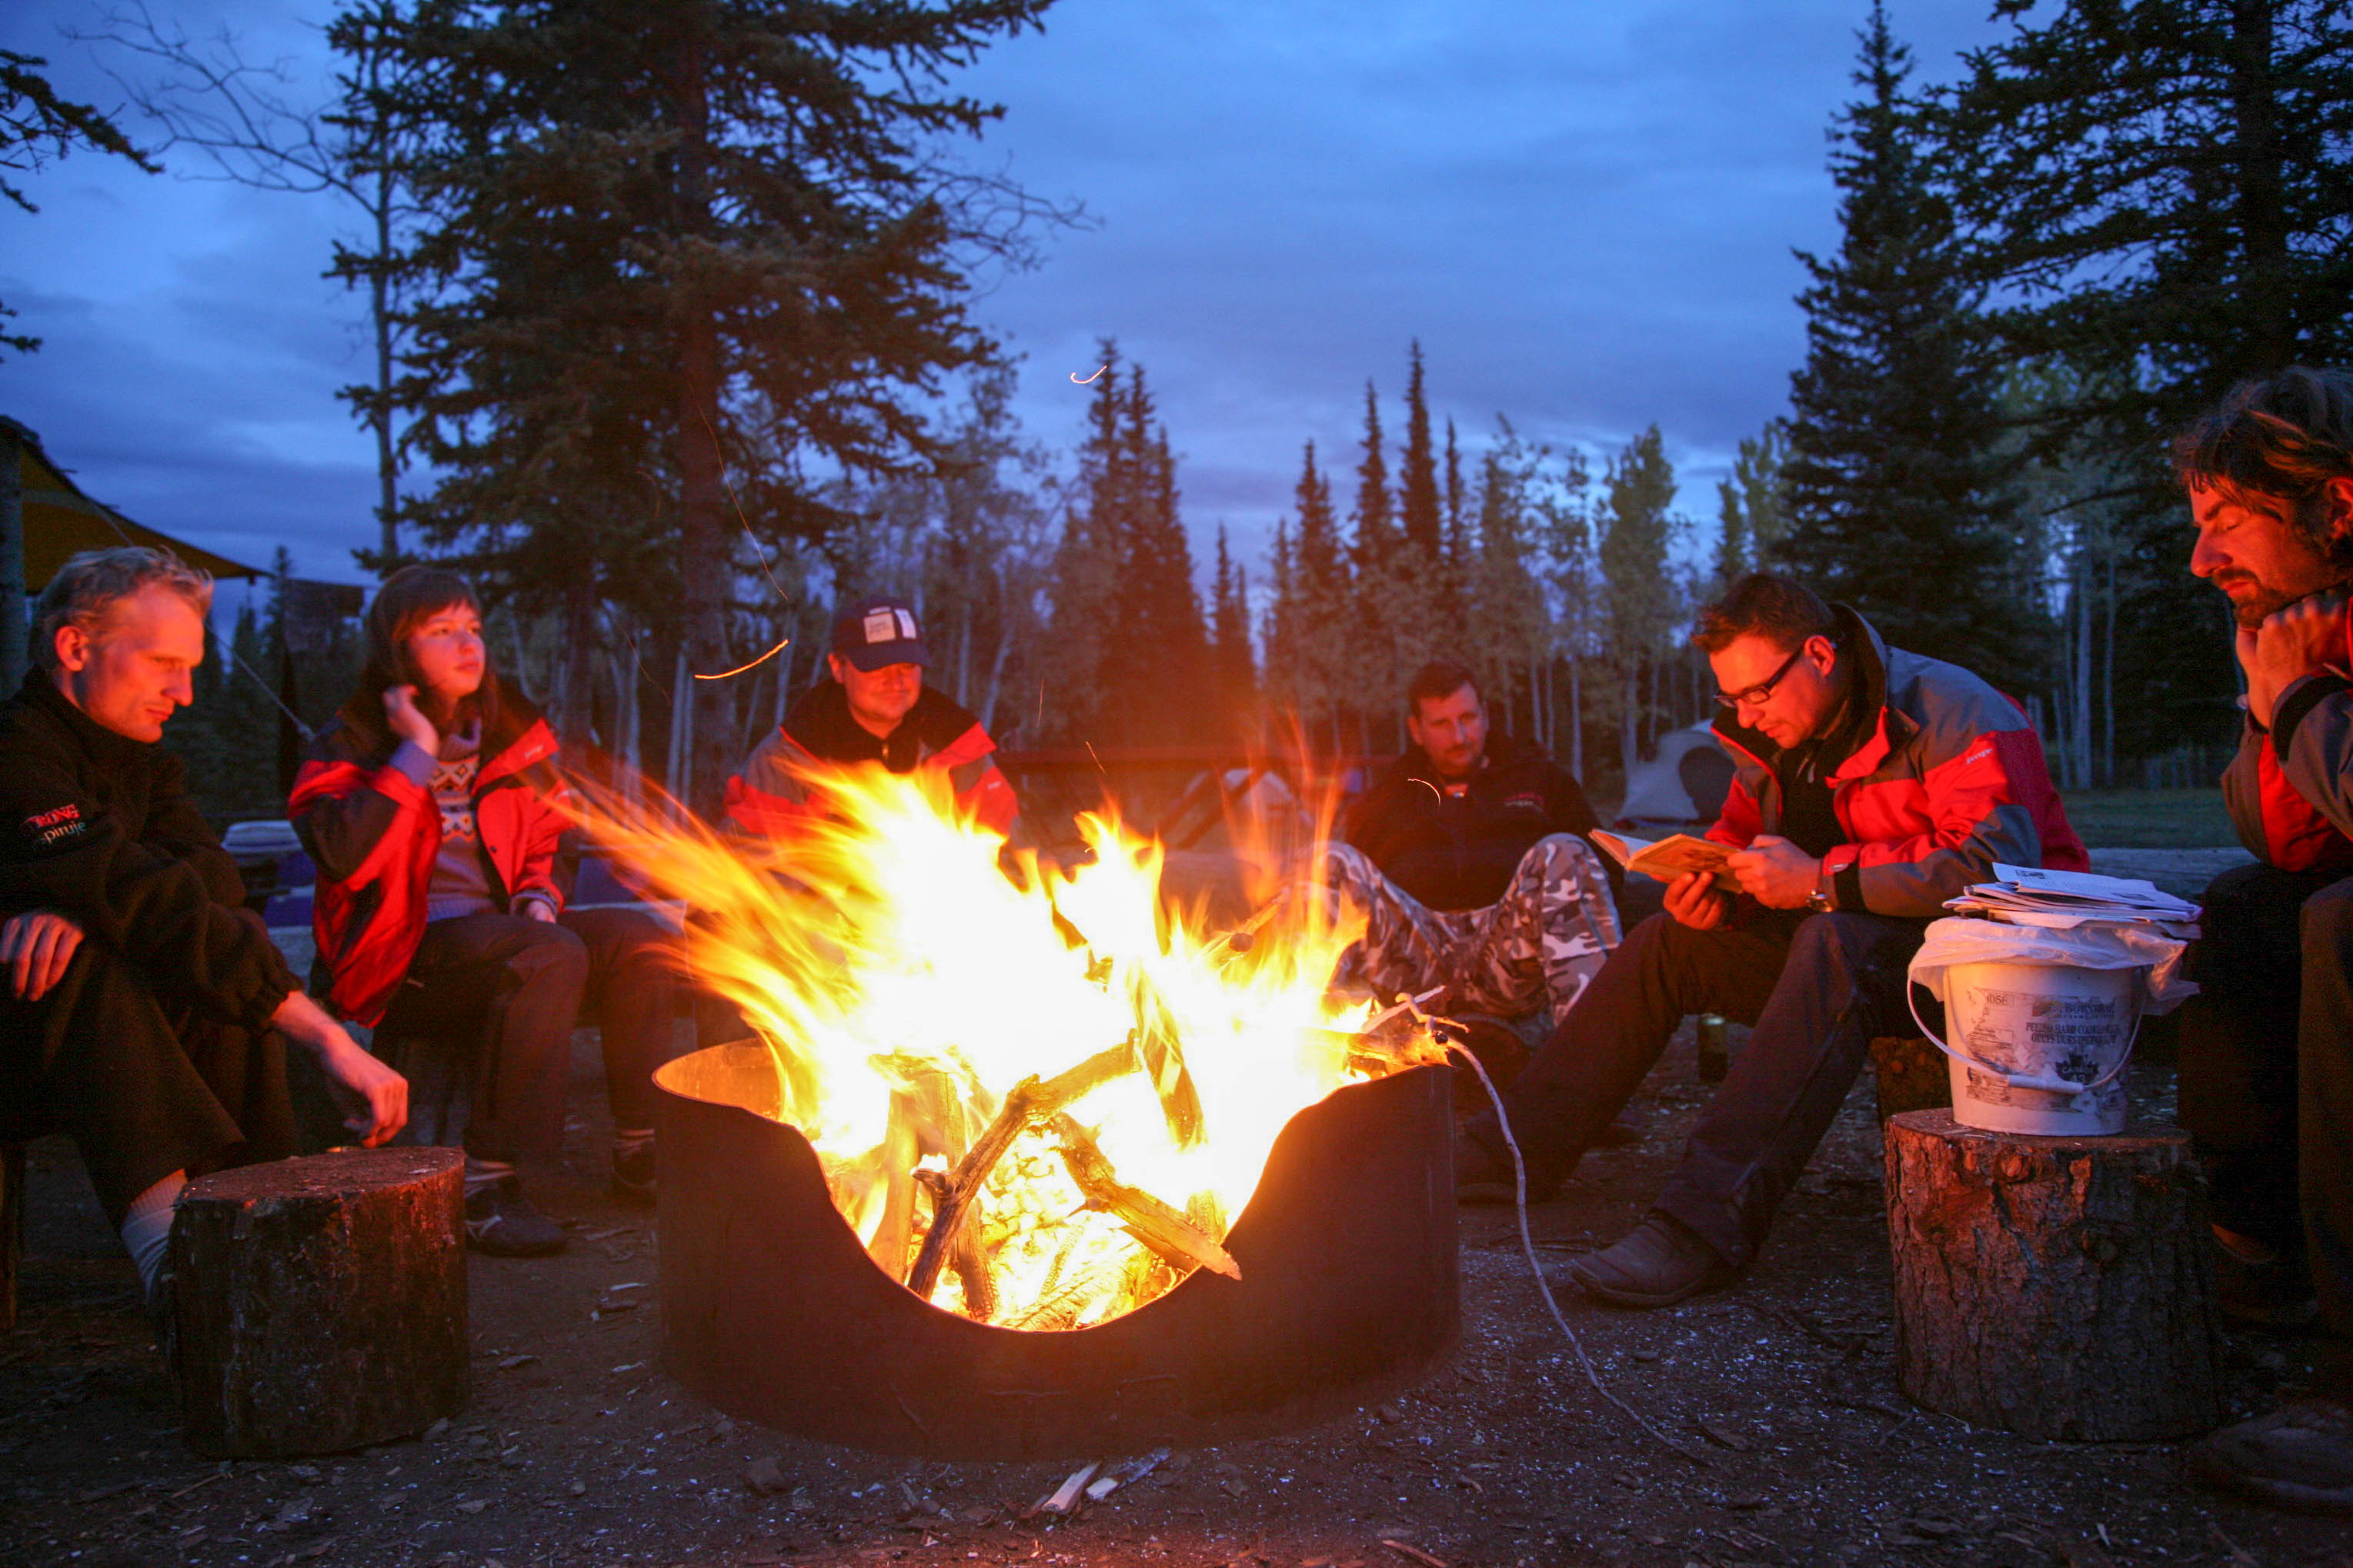 Yukon River - The Classic - Lake Laberge to Dawson City - Gemütliches Lagerfeuer